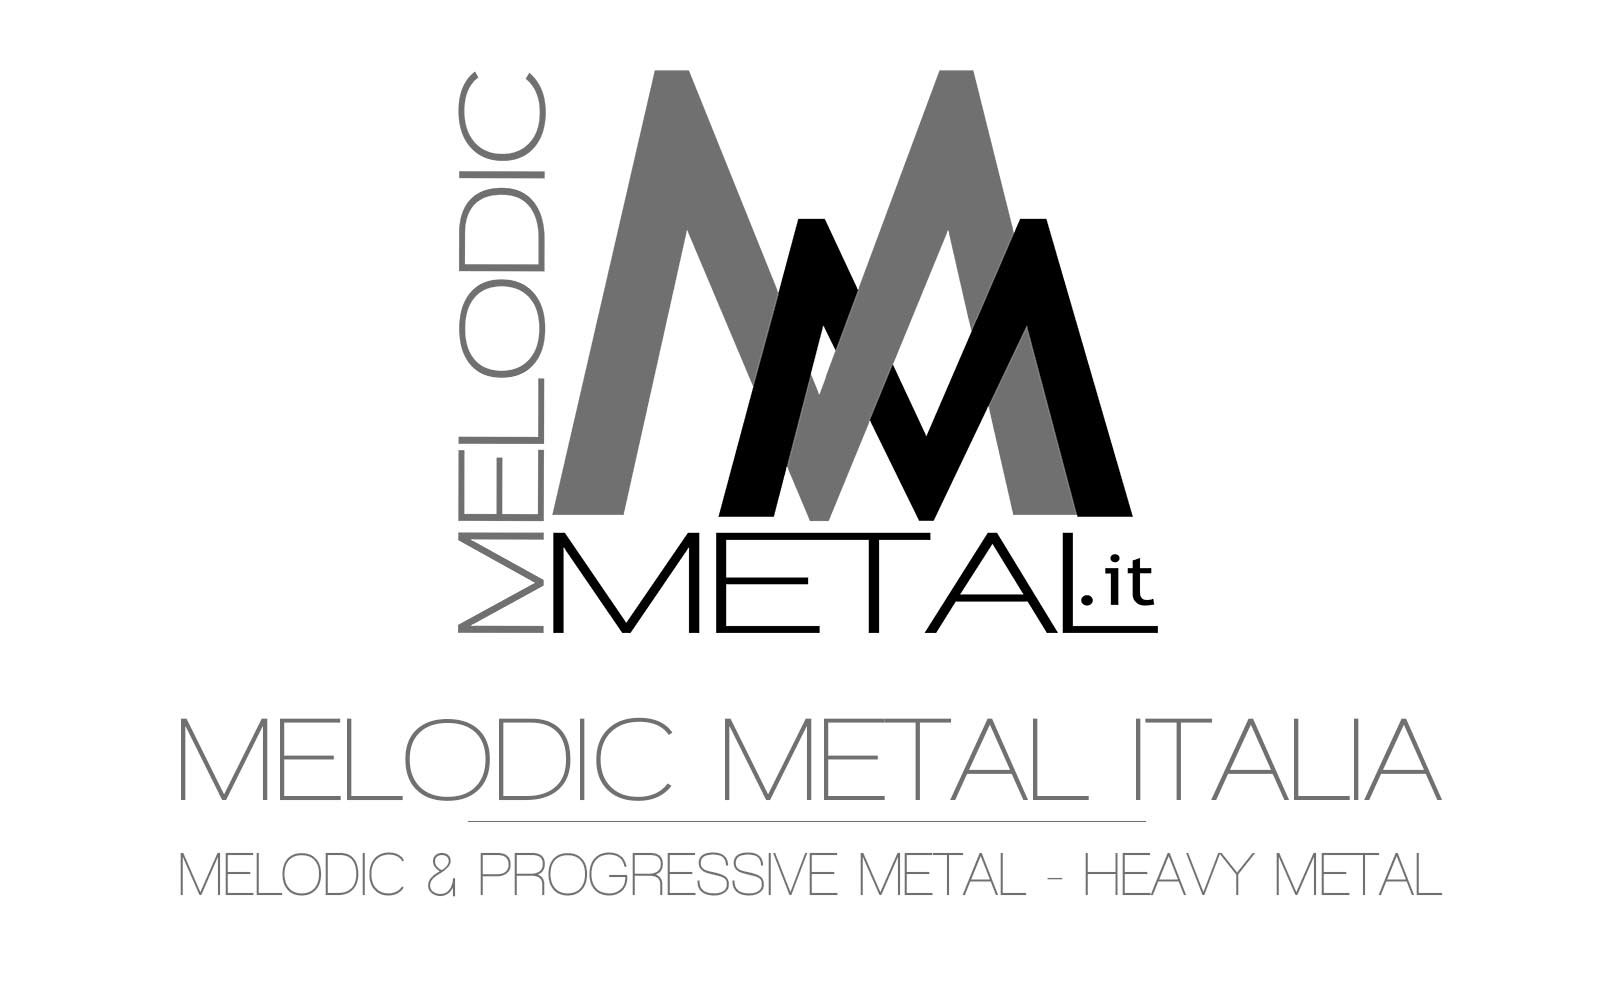 How to write melodic metal